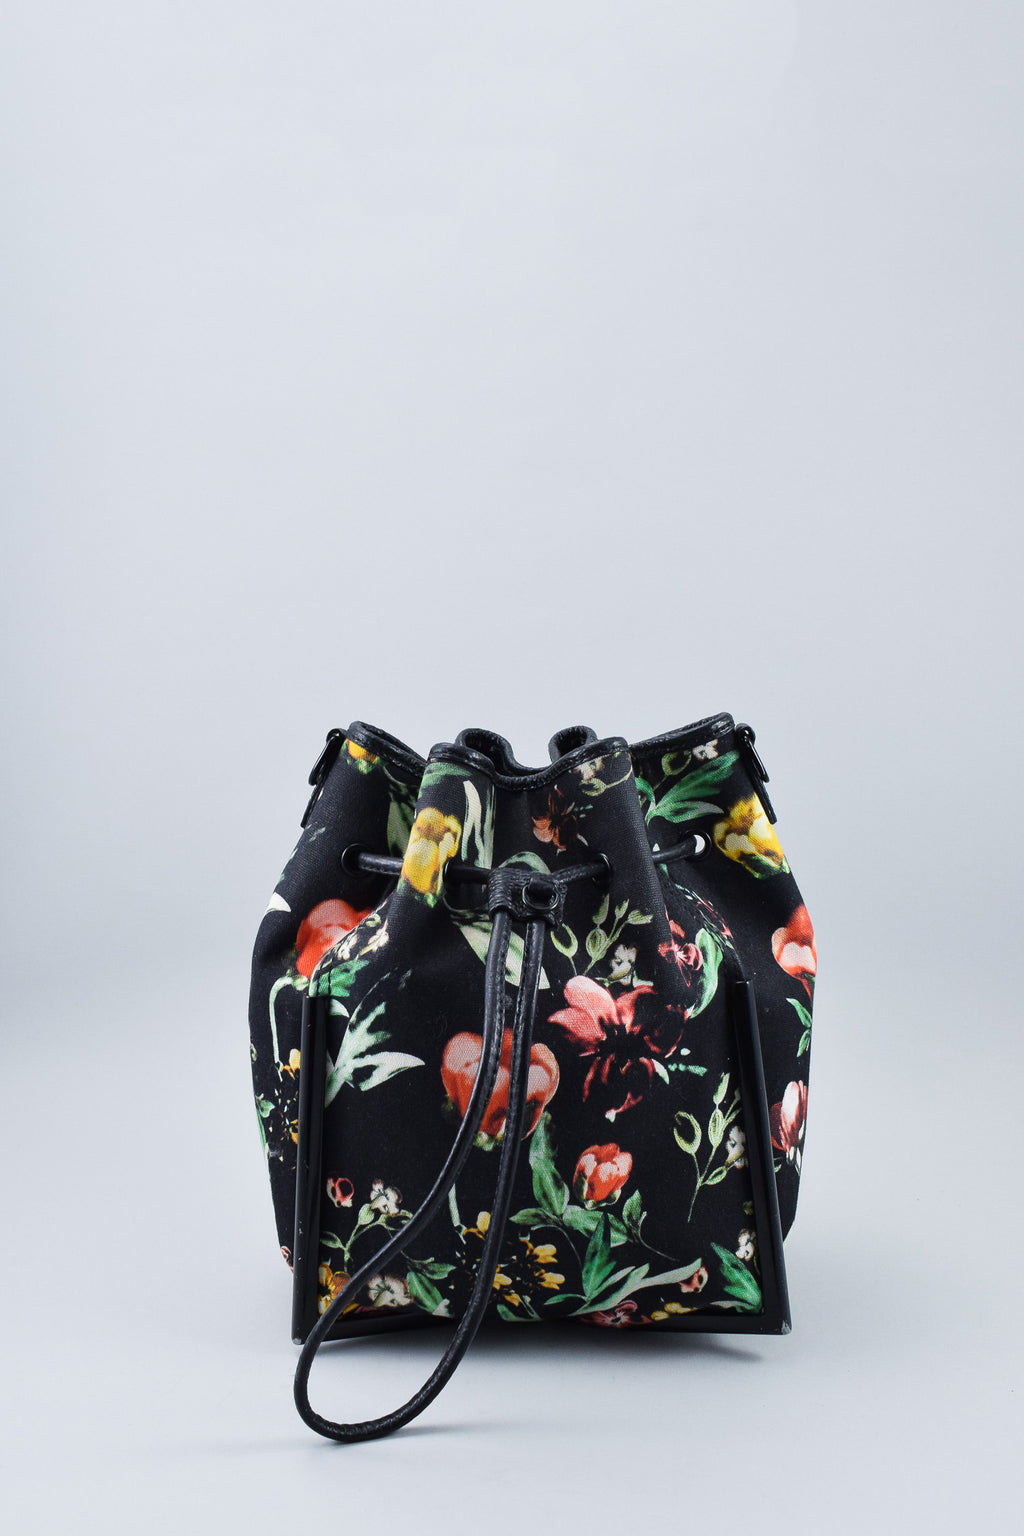 3.1 Phillip Lim Floral Bucket Bag